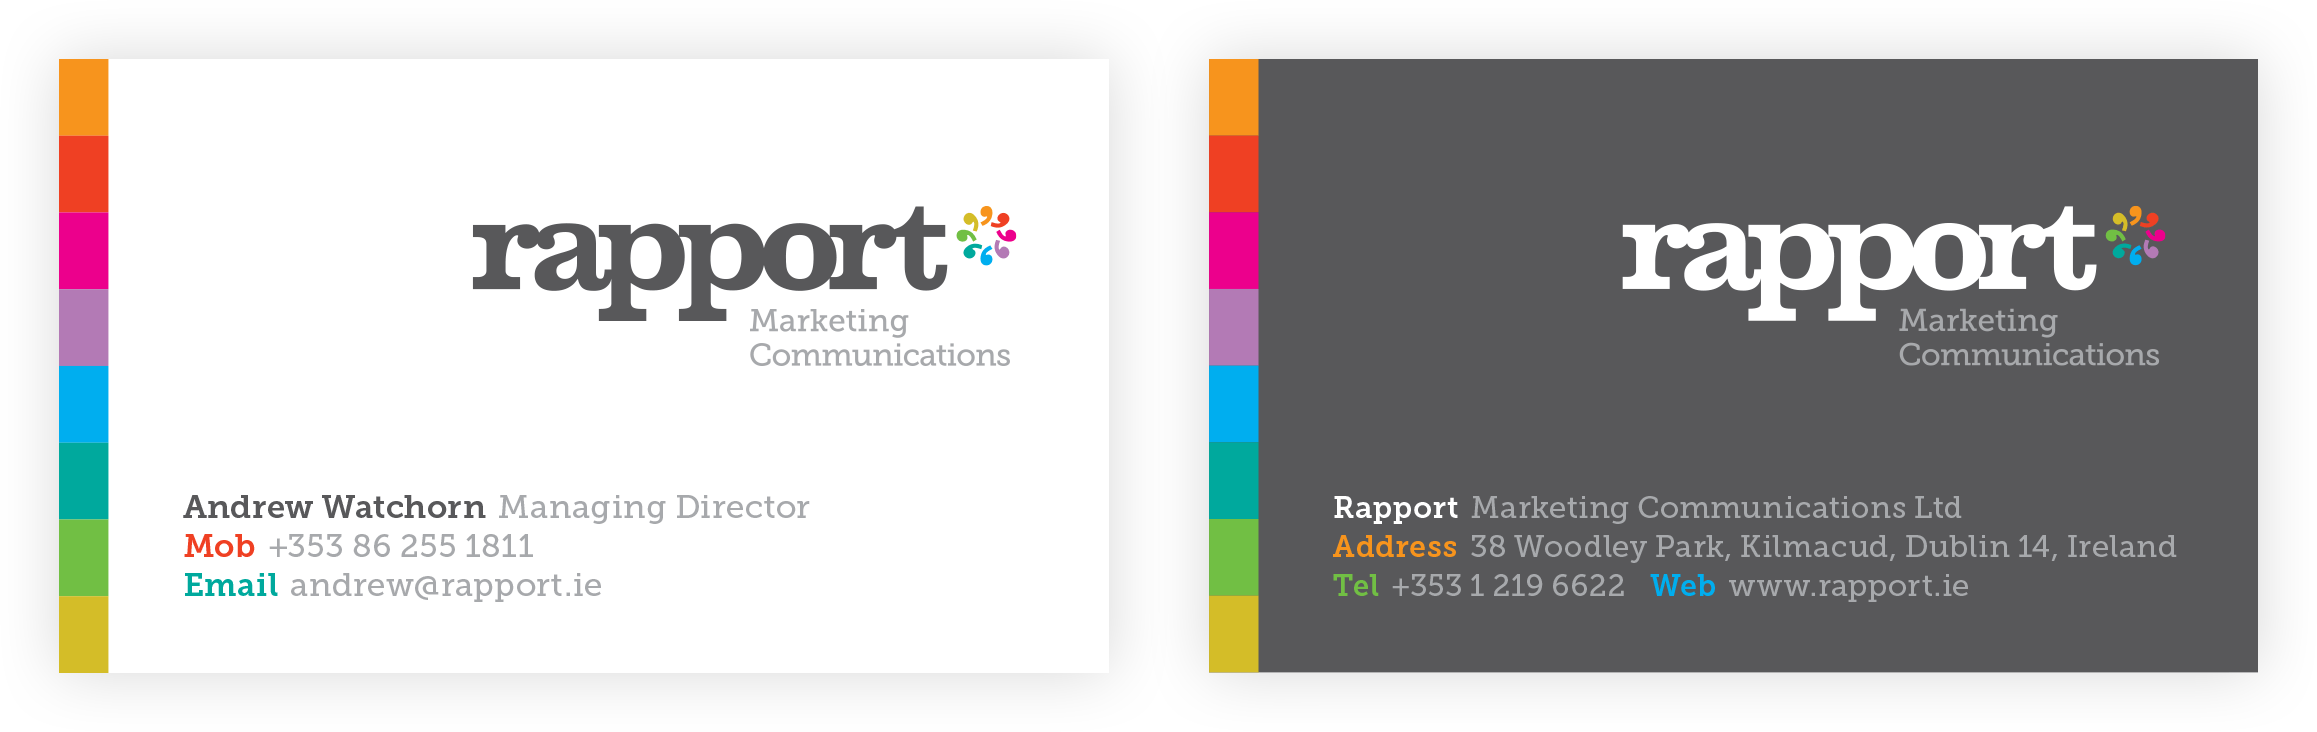 Rapport Business Card